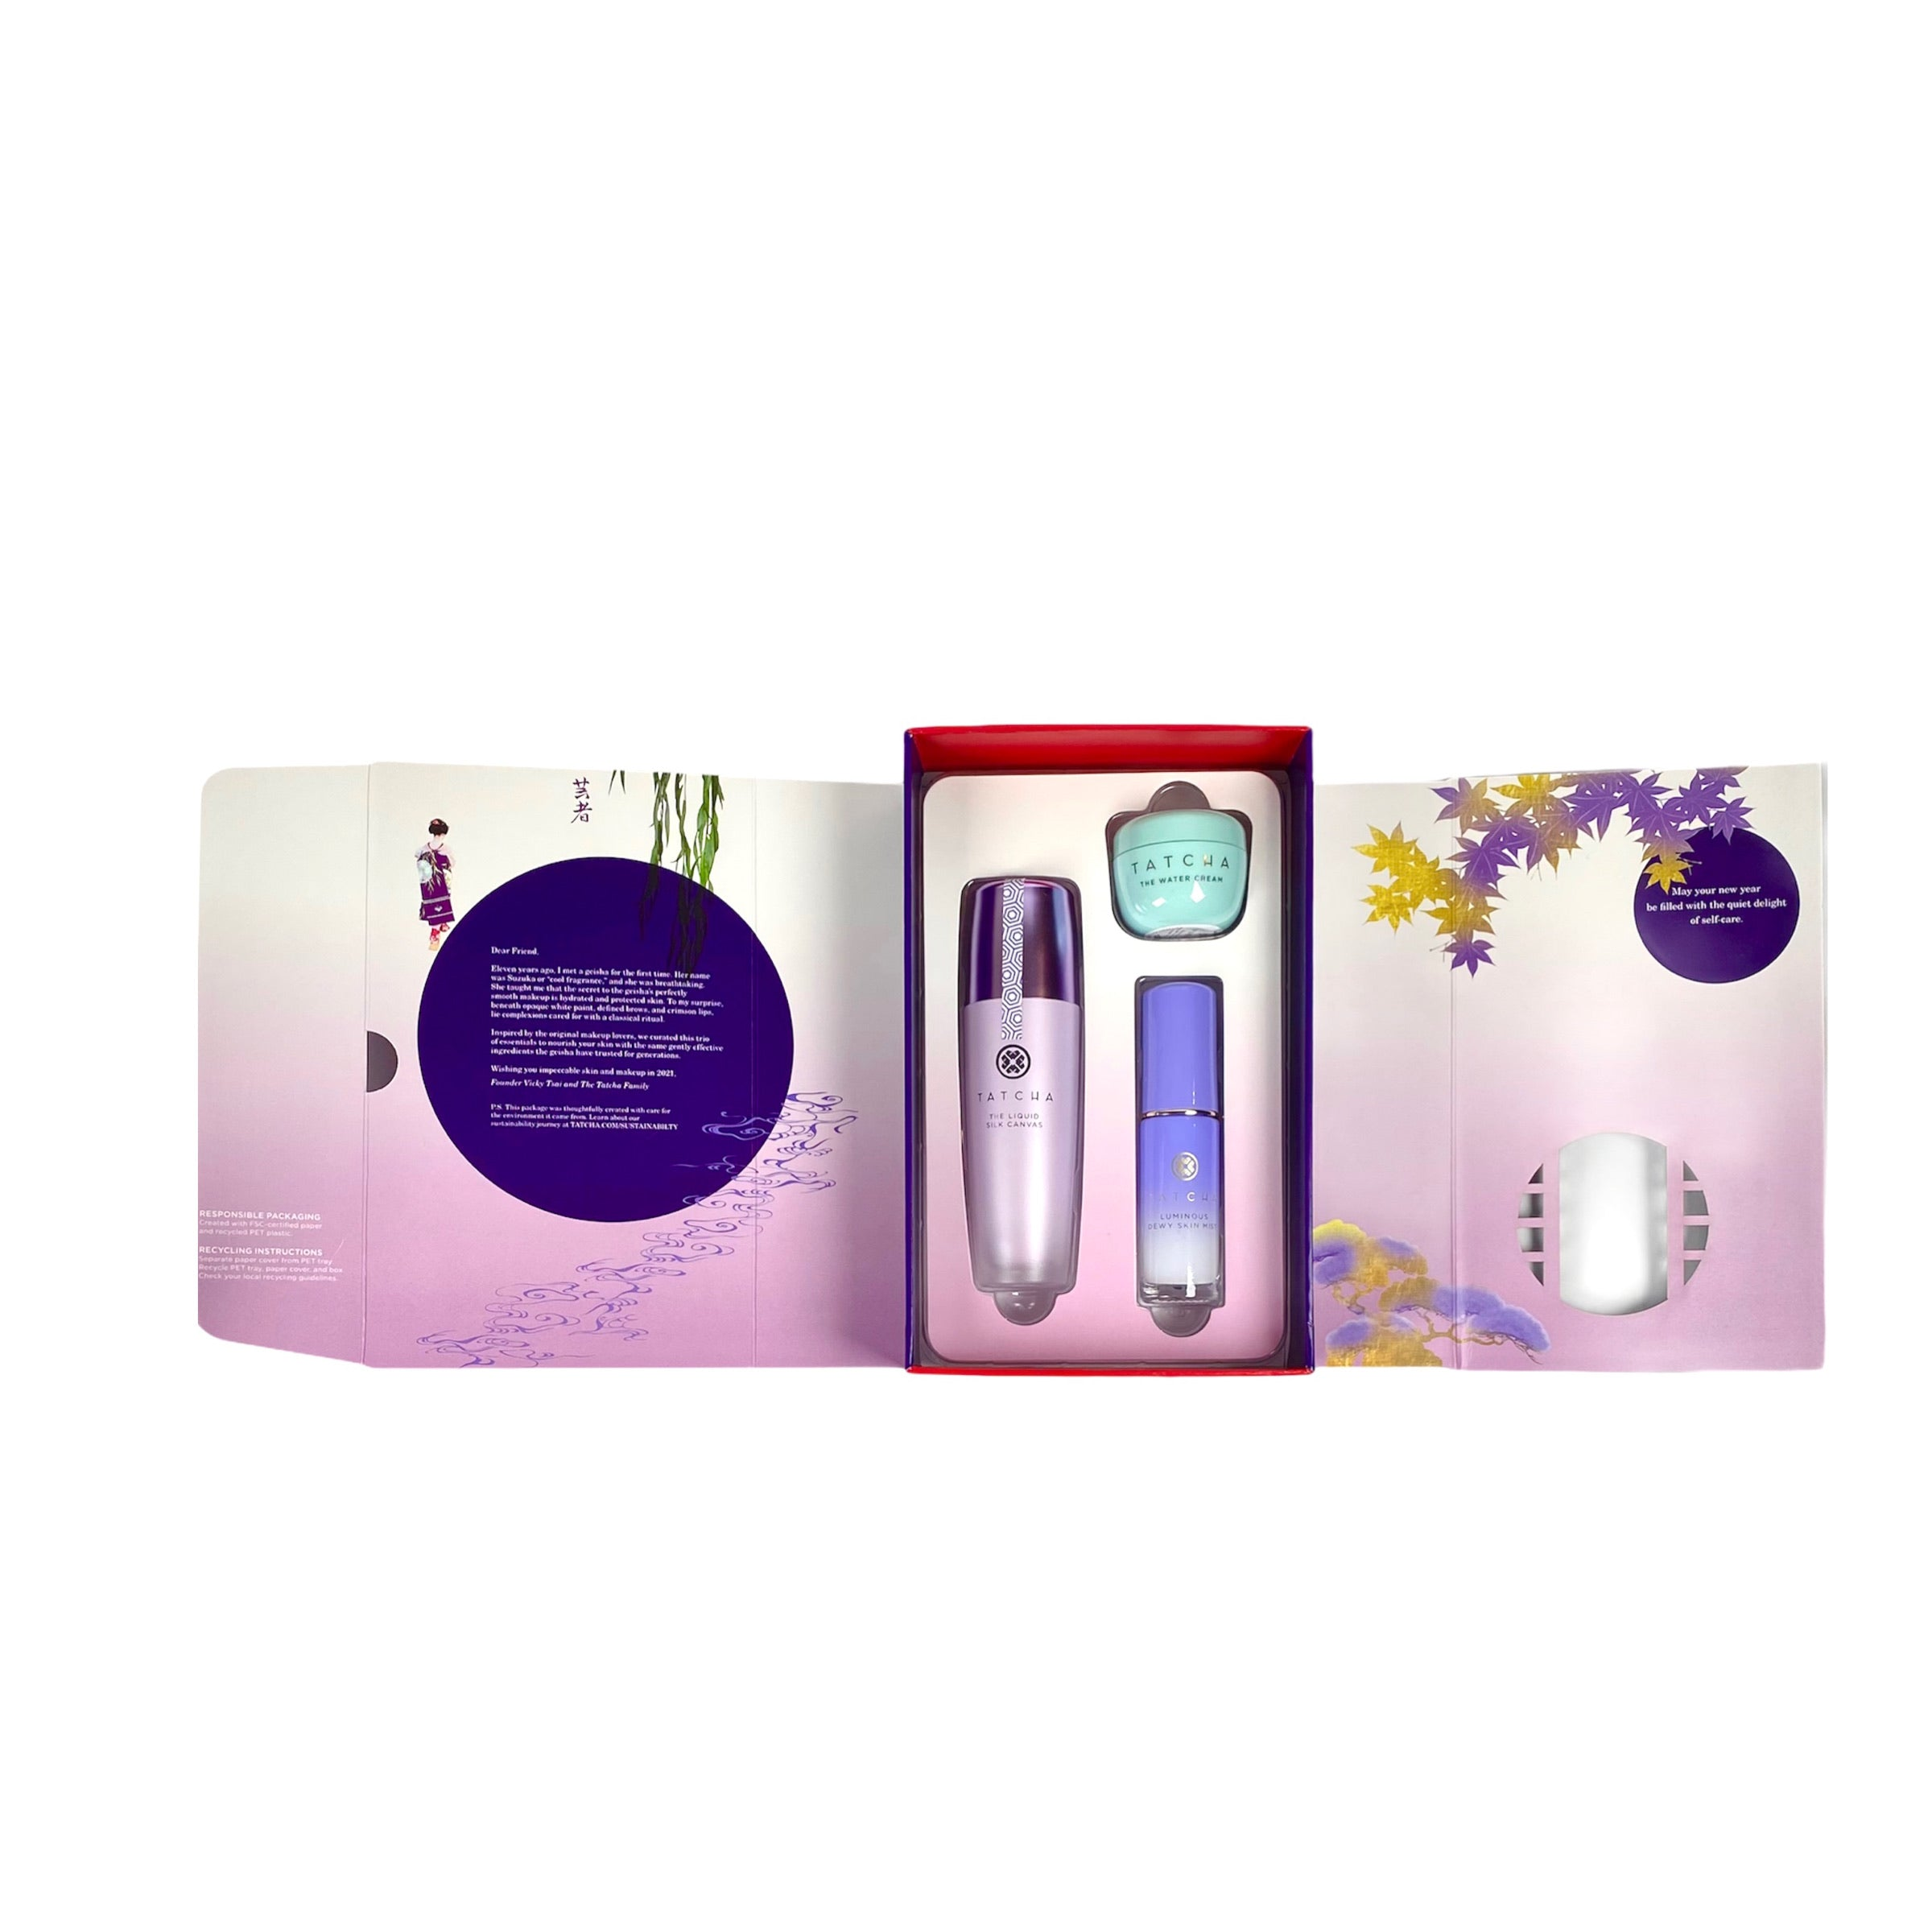 TATCHA Skin & Makeup Essentials - Limited Edition